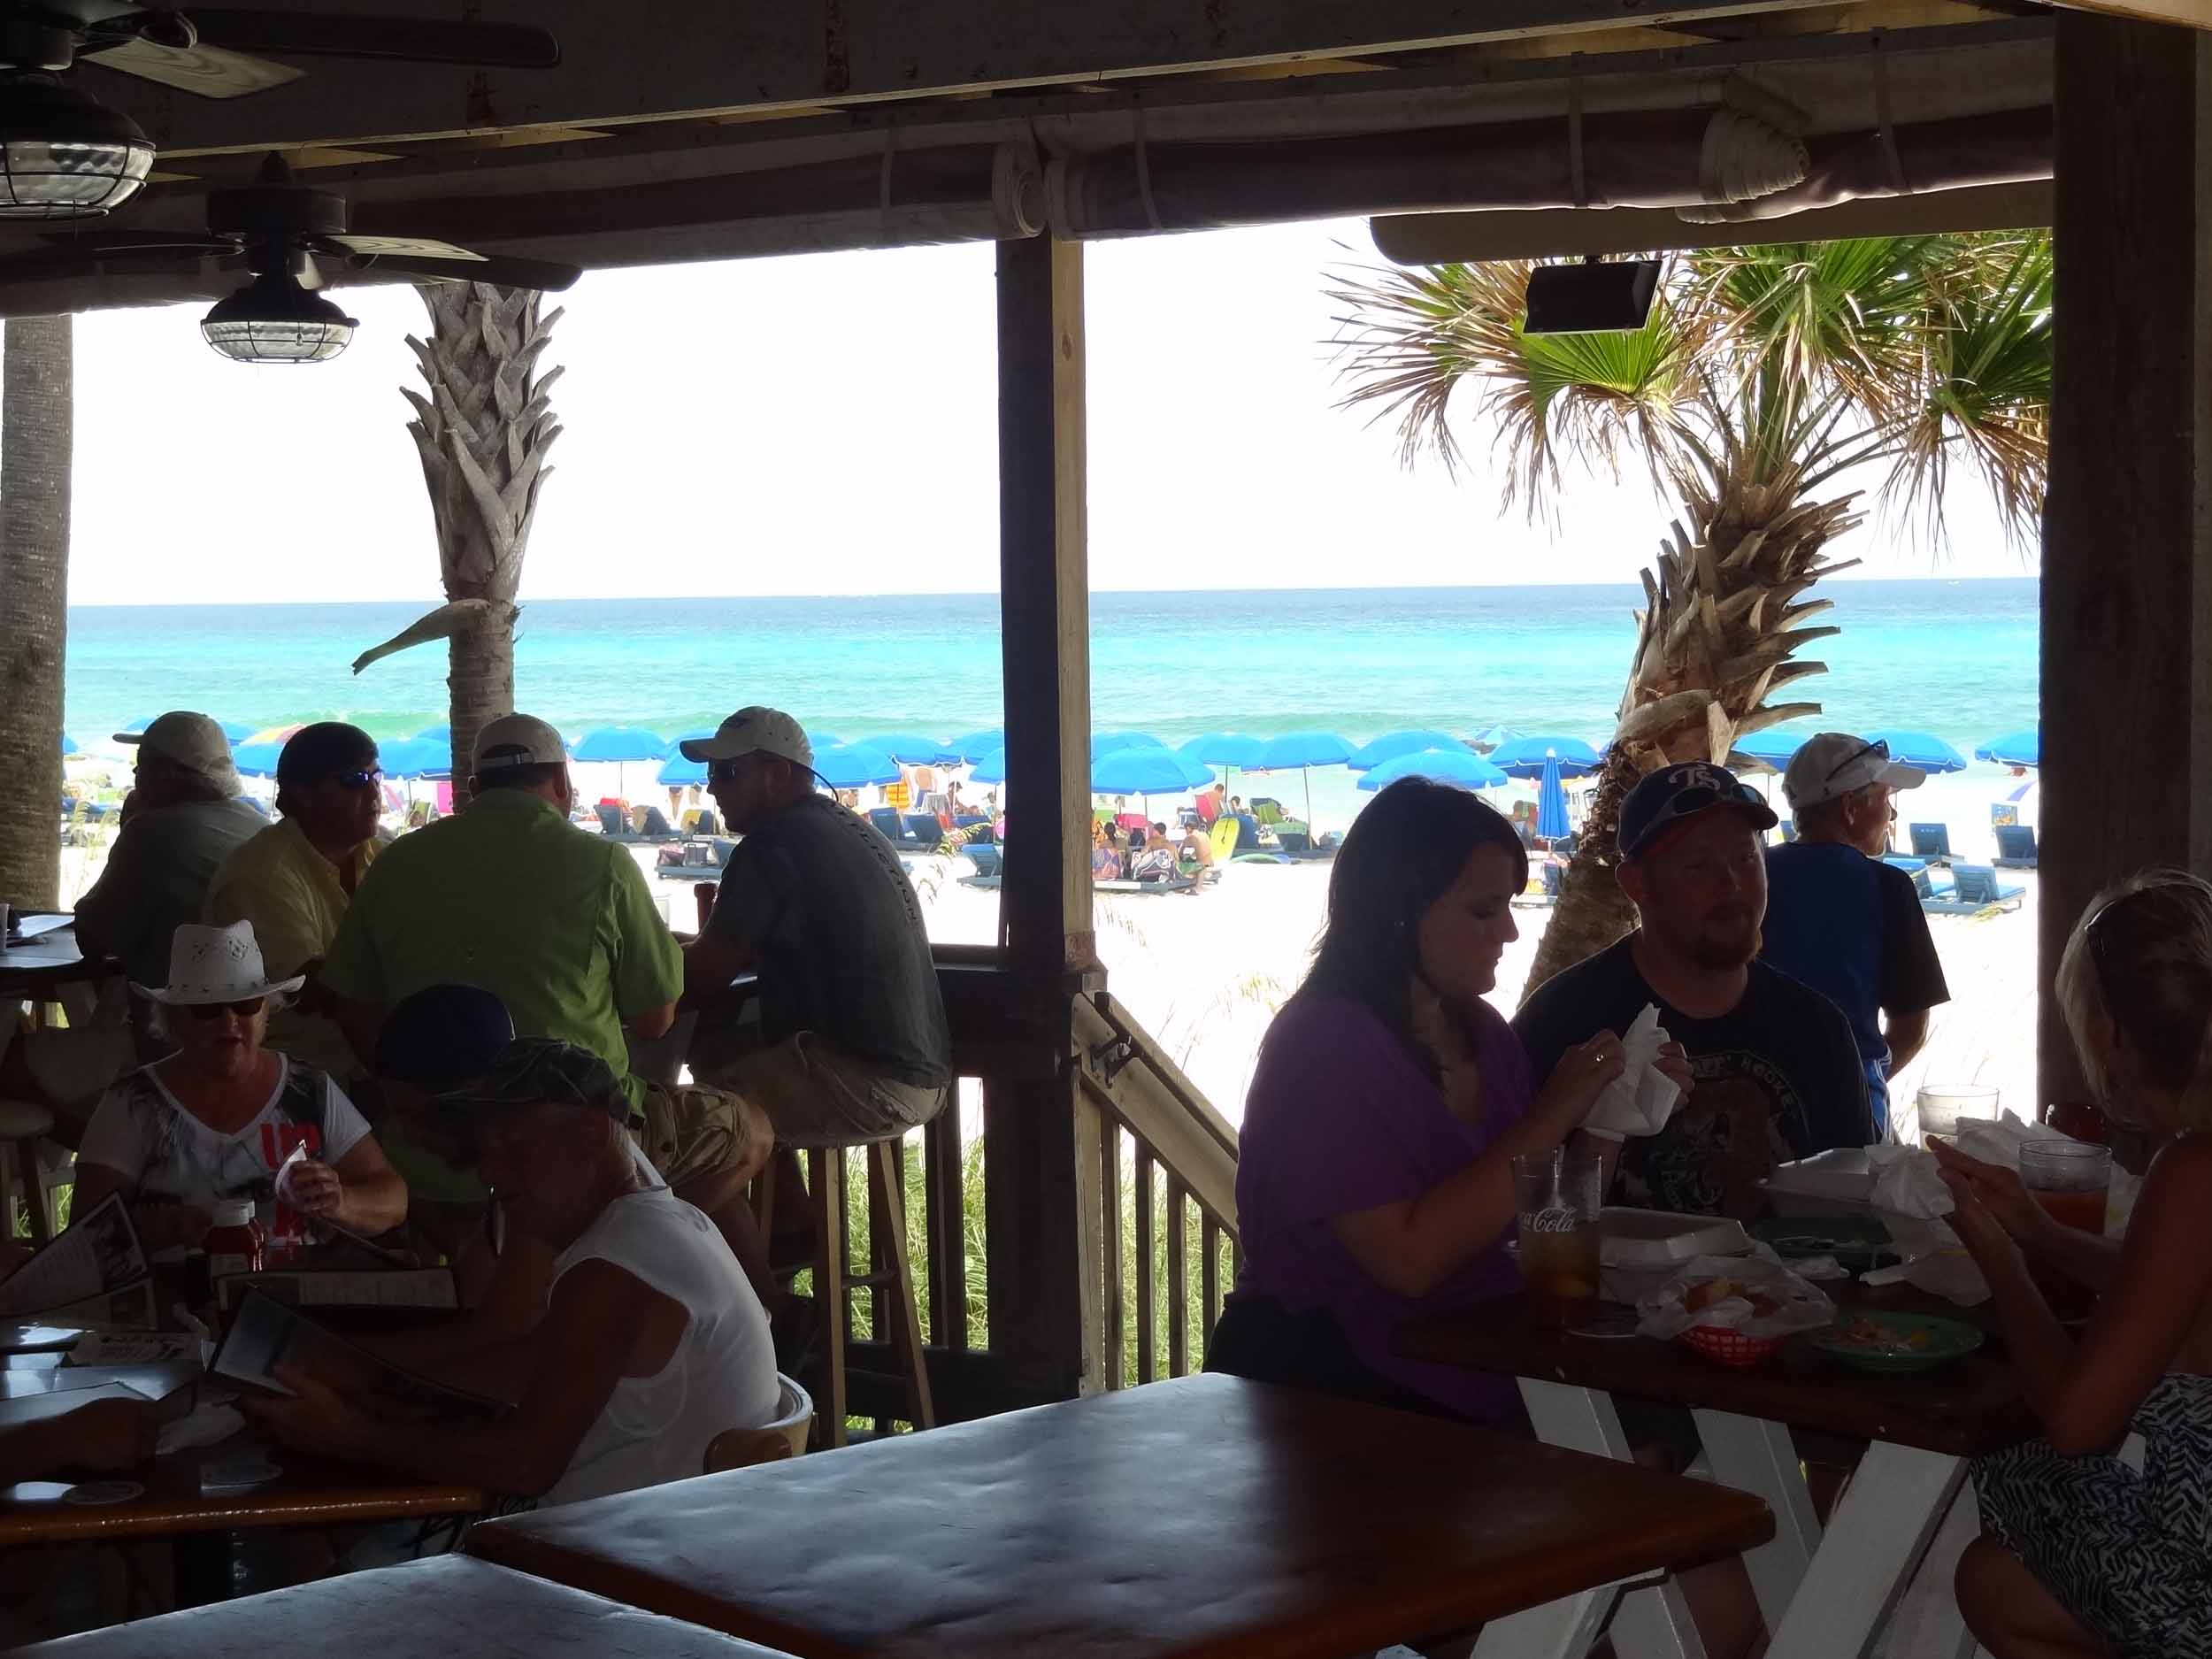 Schooners Seating Area and Beach View